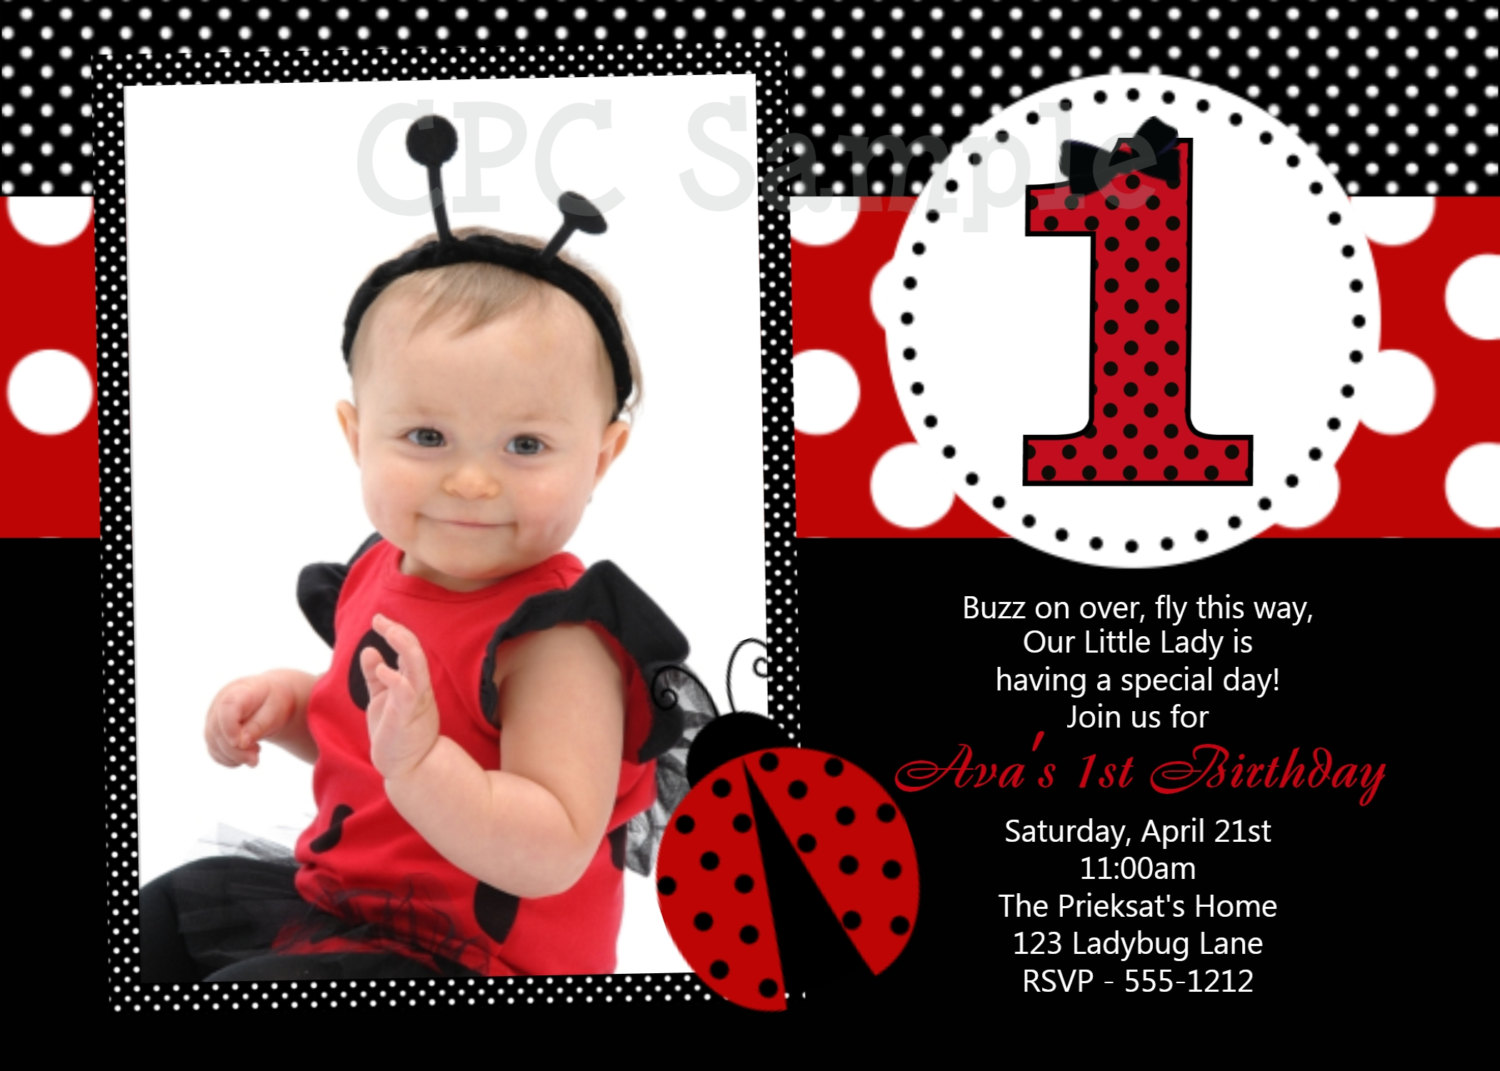 free printable ladybug birthday cards ; ladybug-birthday-invitations-including-exceptional-Birthday-Invitation-Templates-with-full-of-pleasure-environment-5